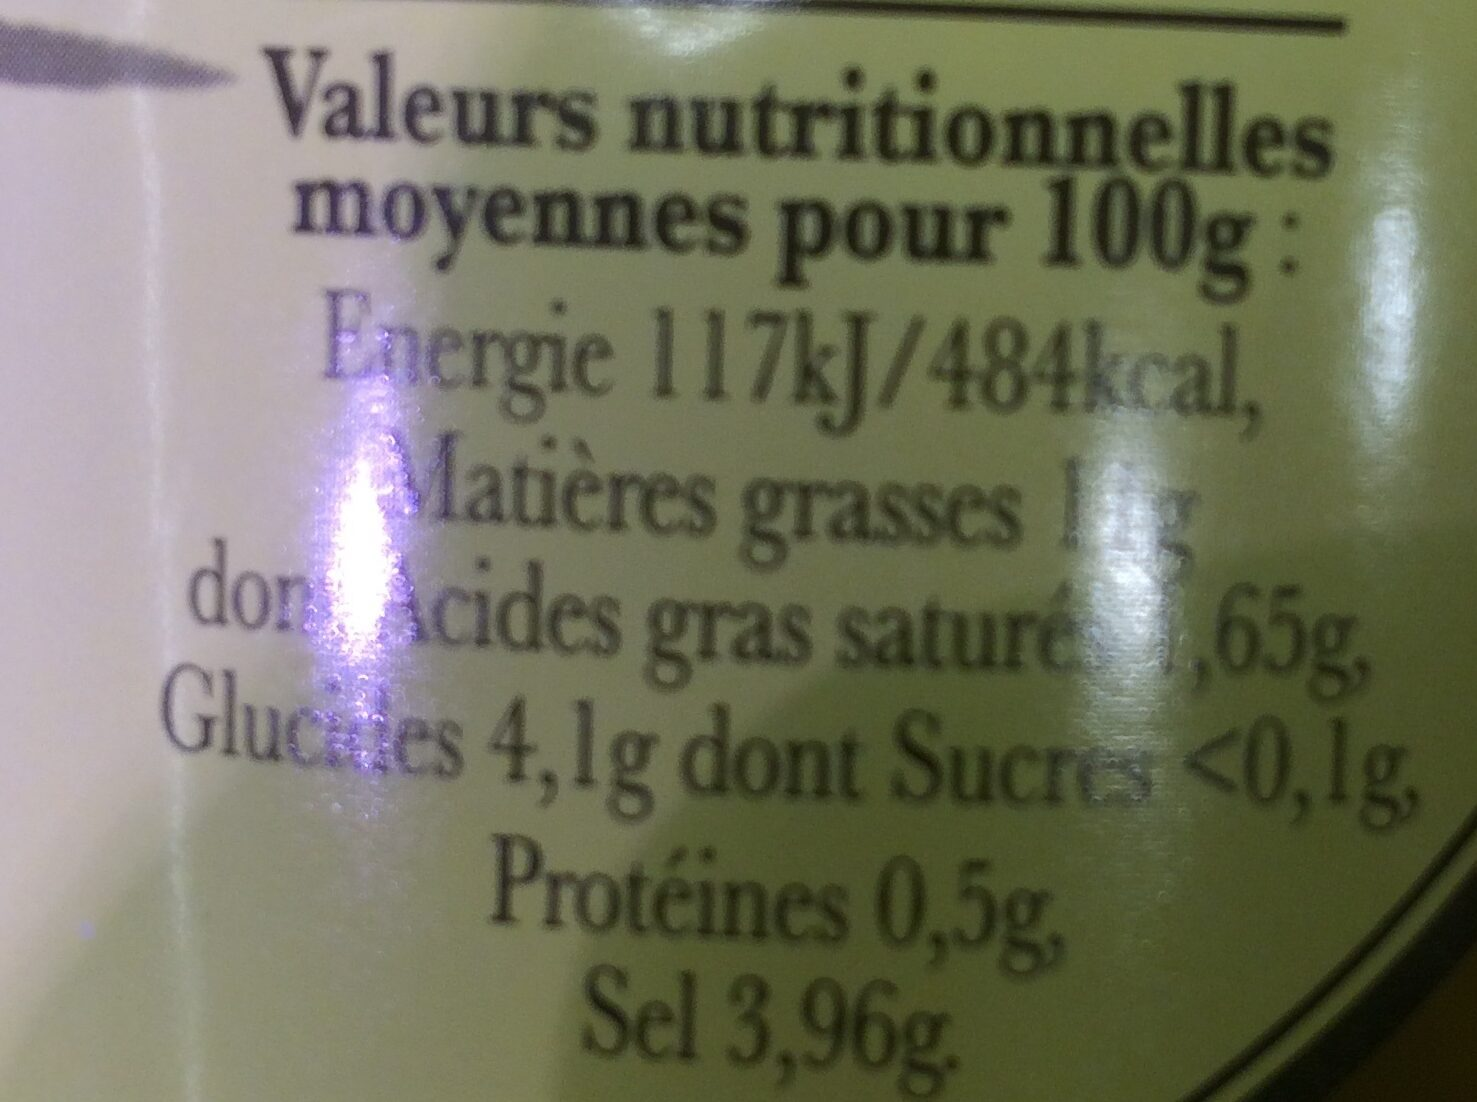 Olives vertes - Nutrition facts - fr